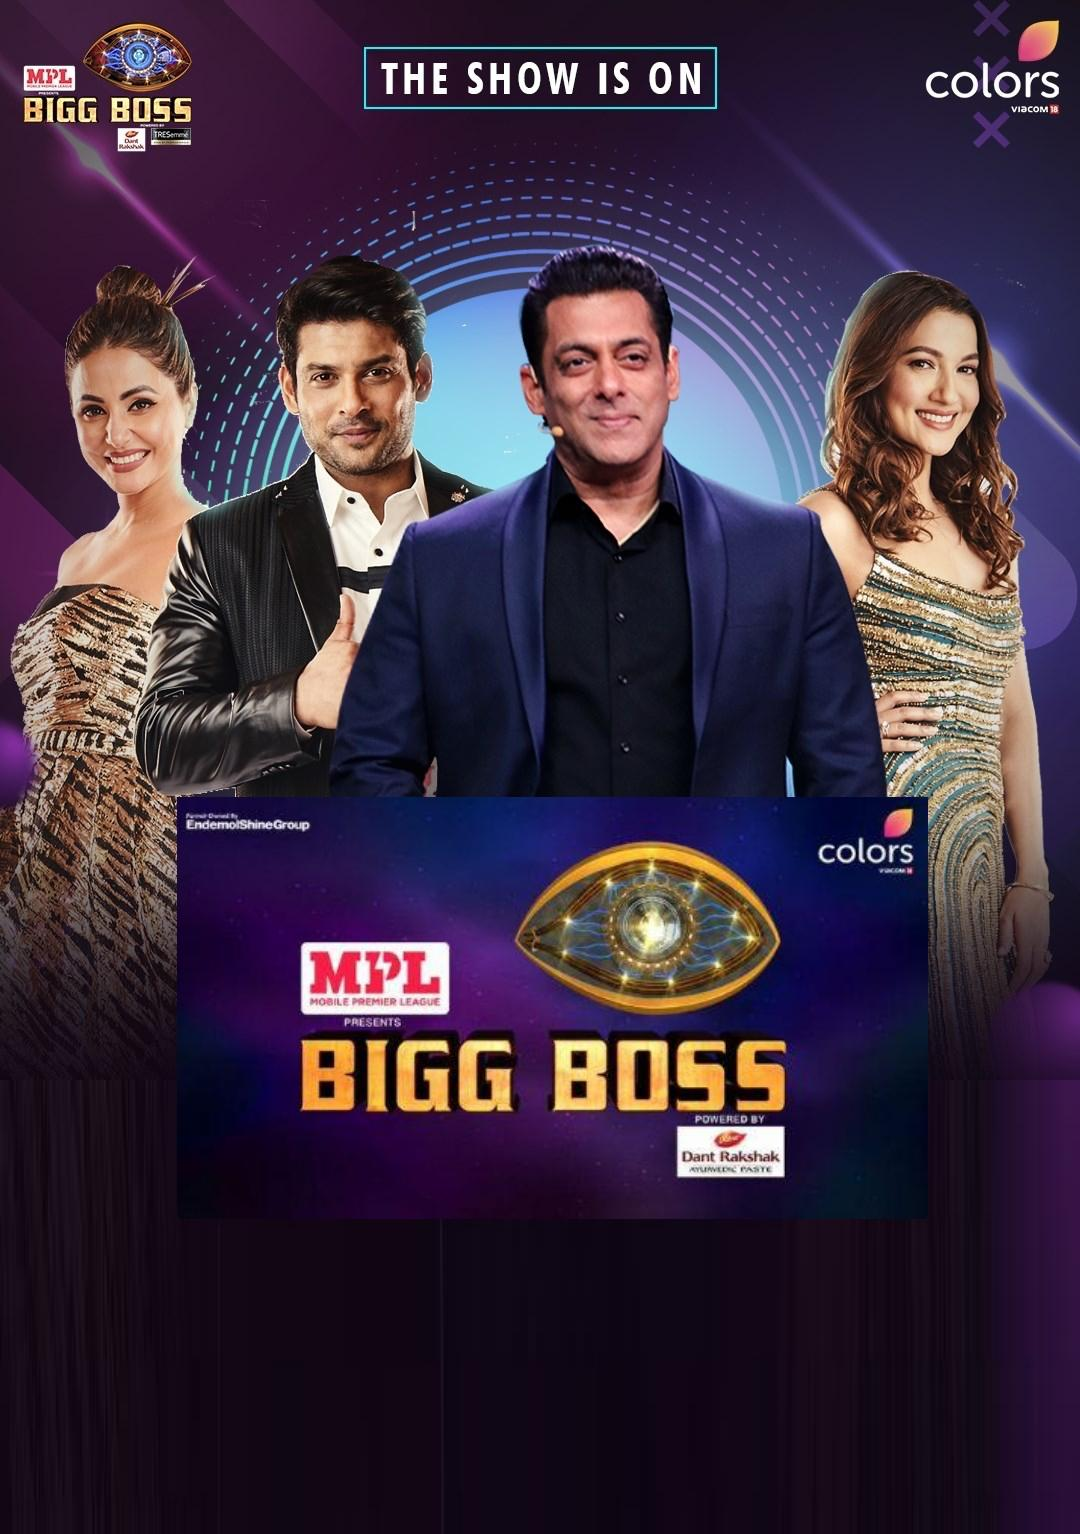 Bigg Boss 14 (2020) Full Show